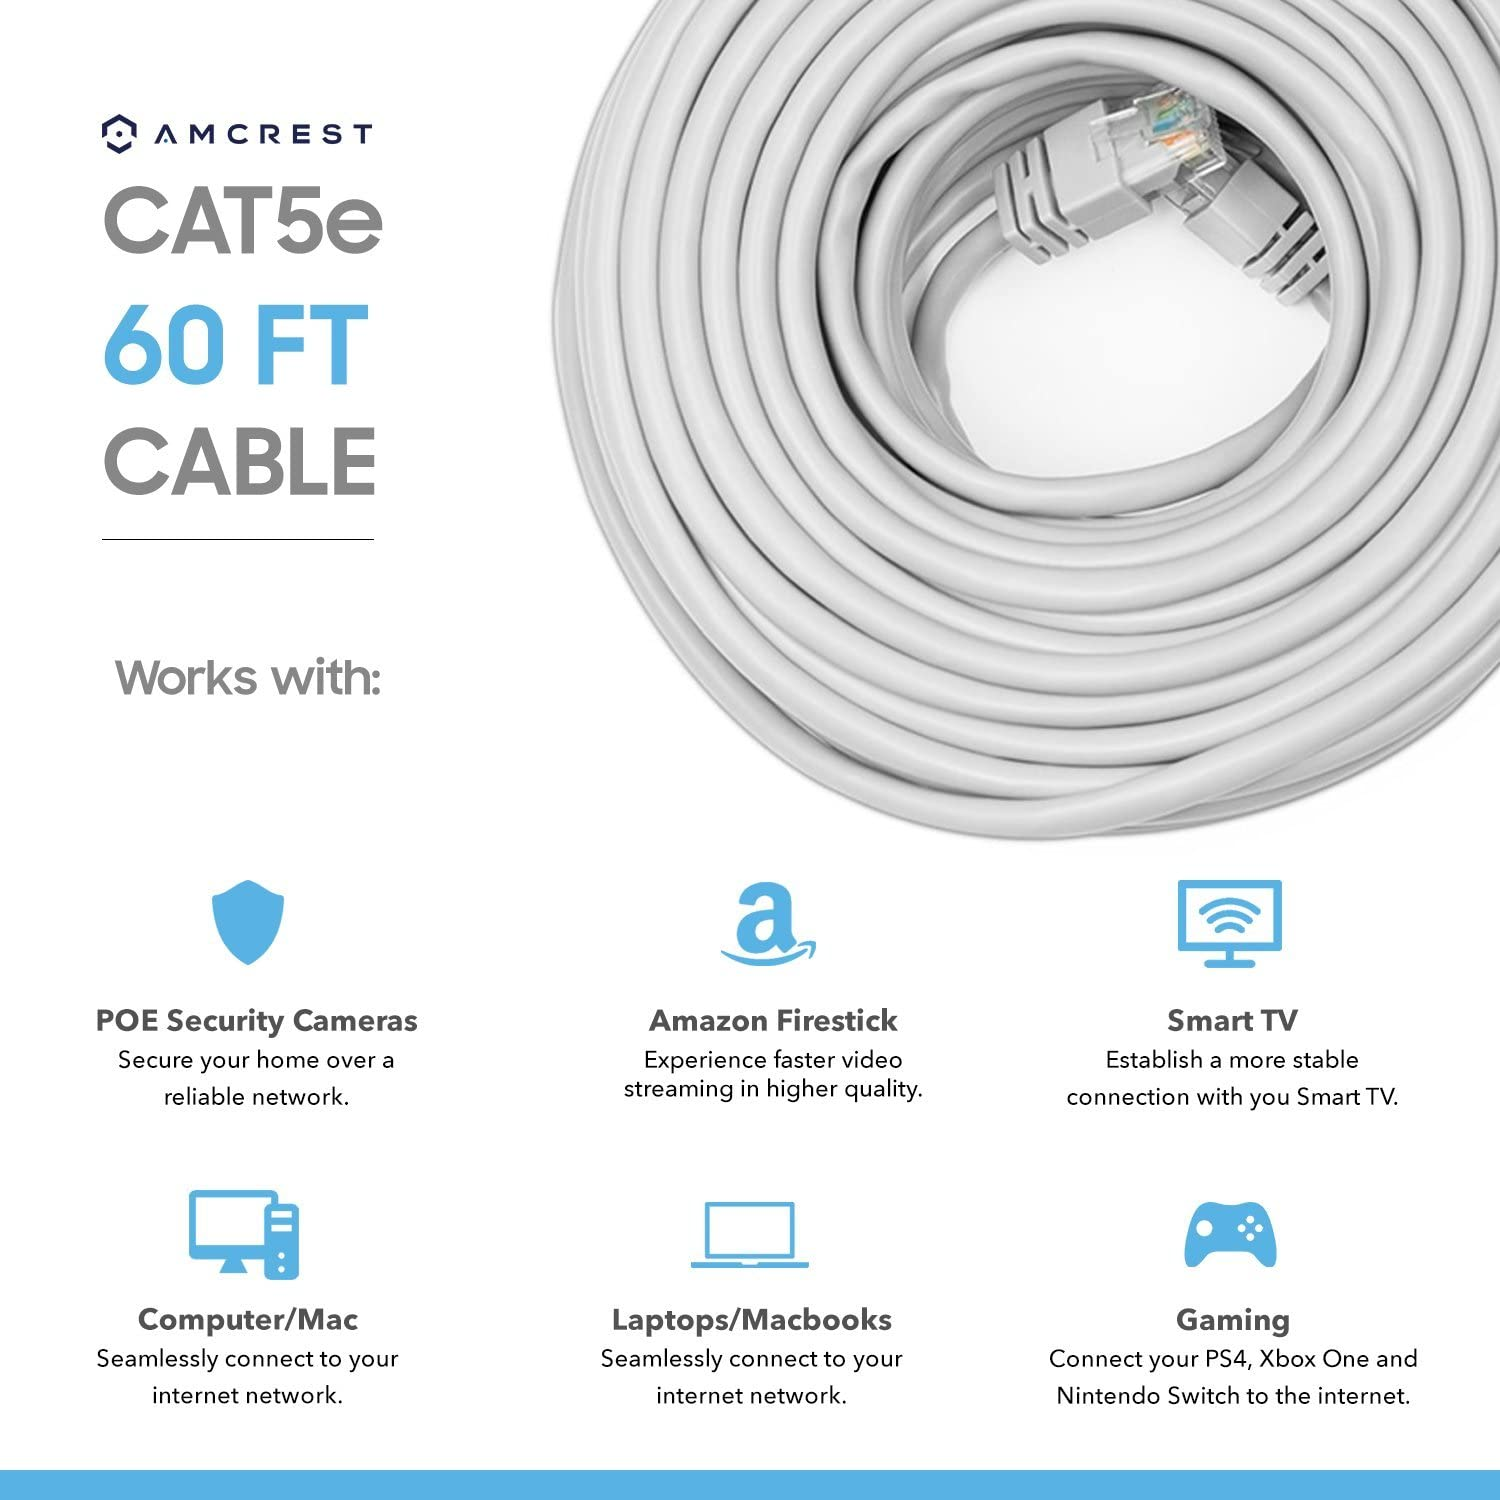 Laptop Home Smart TV Xbox One 2PACK-CAT5ECABLE60 Router PS4 Computer Amcrest Cat5e Cable 60ft Ethernet Cable Internet High Speed Network Cable for POE Security Cameras